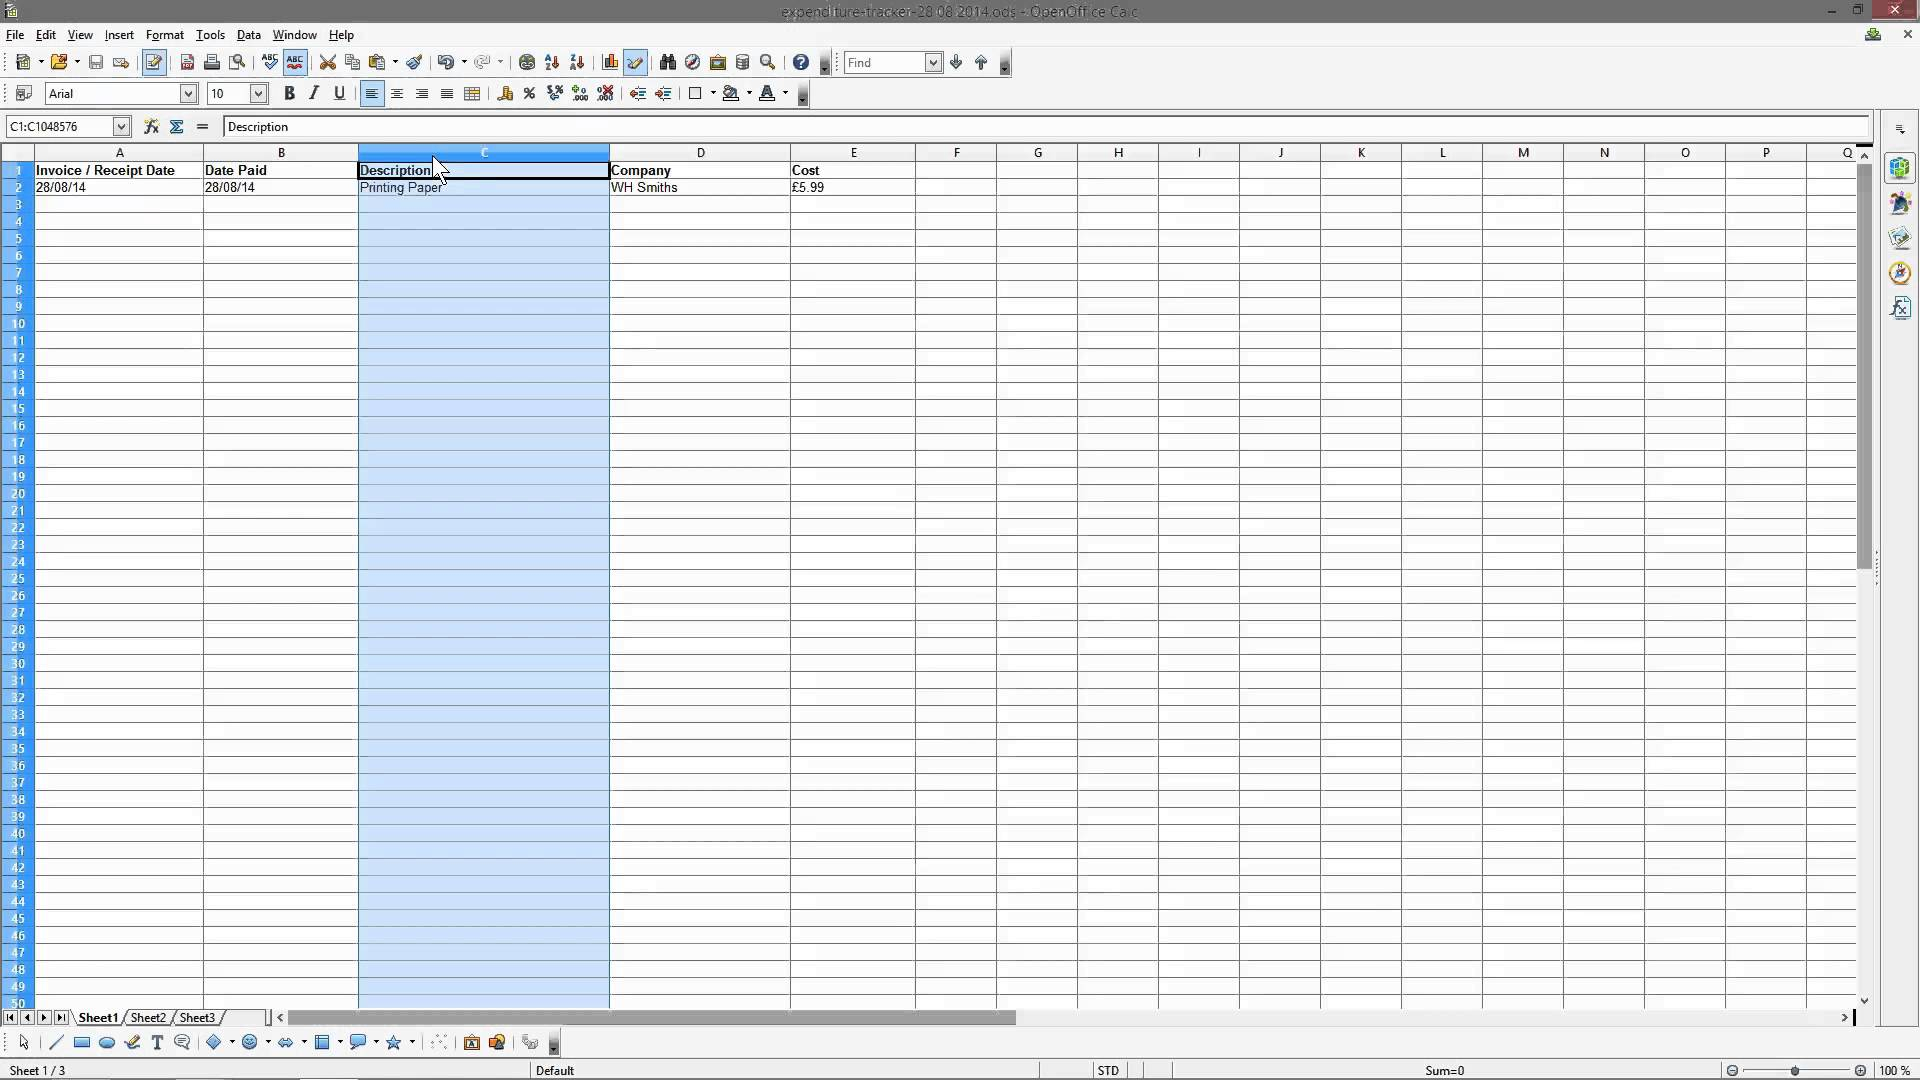 Daily Expenses Spreadsheet Intended For Excel Spreadsheet To Track Daily Expenses Templates For Free Expense